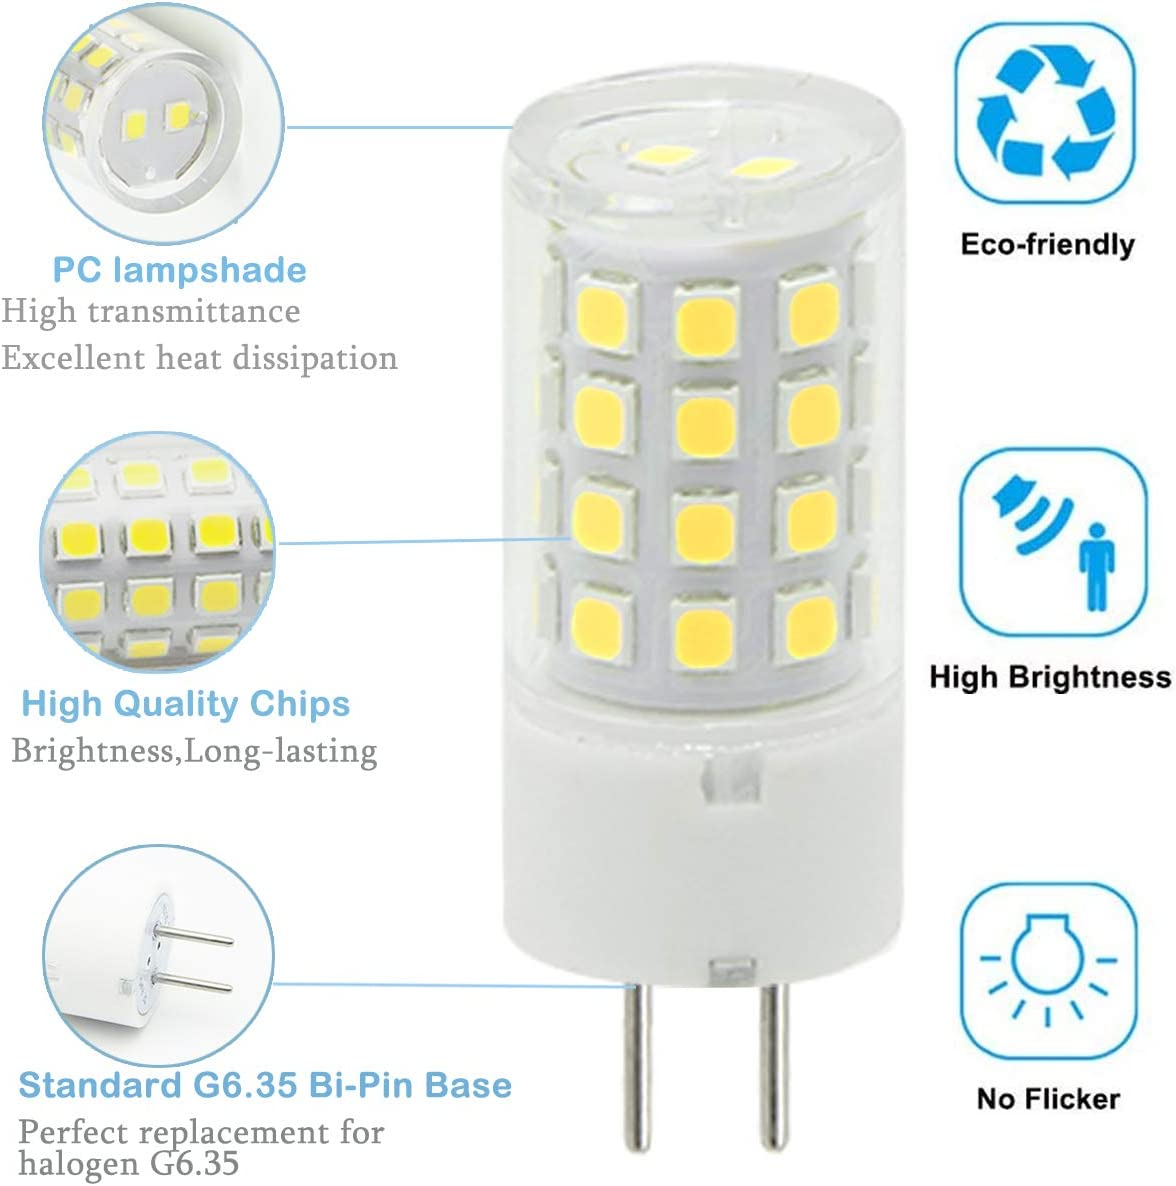 XIX 5-Pack 12V 4W G6.35 LED lampadina Bi-Pin Base 40W Equivalente Lampadina G6.35/GY6.35 LED Bianco Caldo 3000K [Classe di efficienza energetica A+] 5.1 Watt